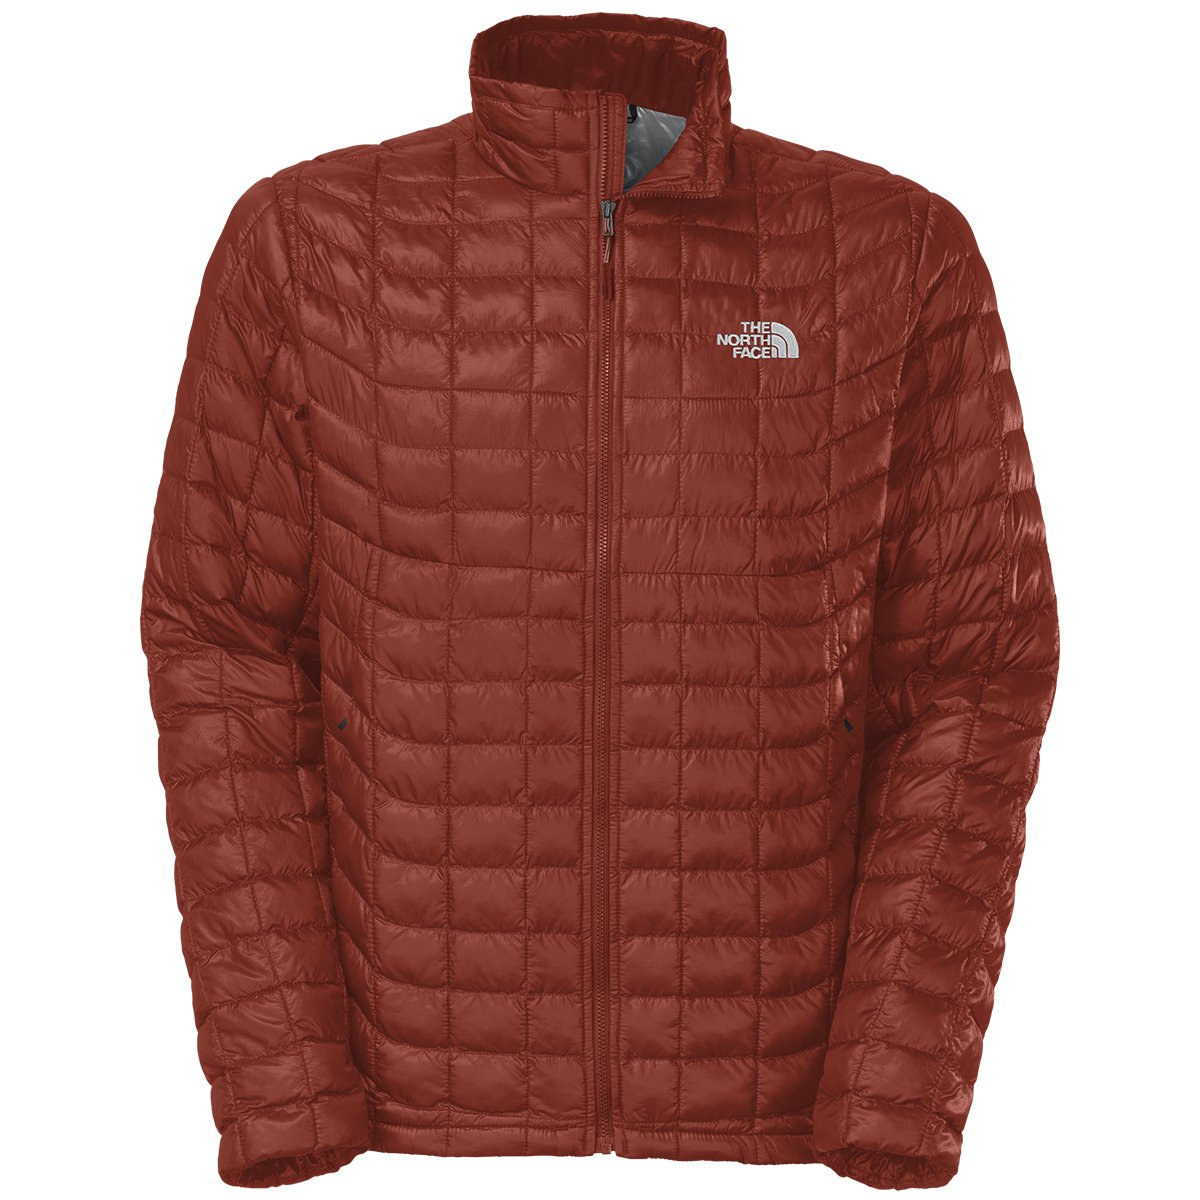 The North Face Men's Thermoball Jacket-Brick-XL